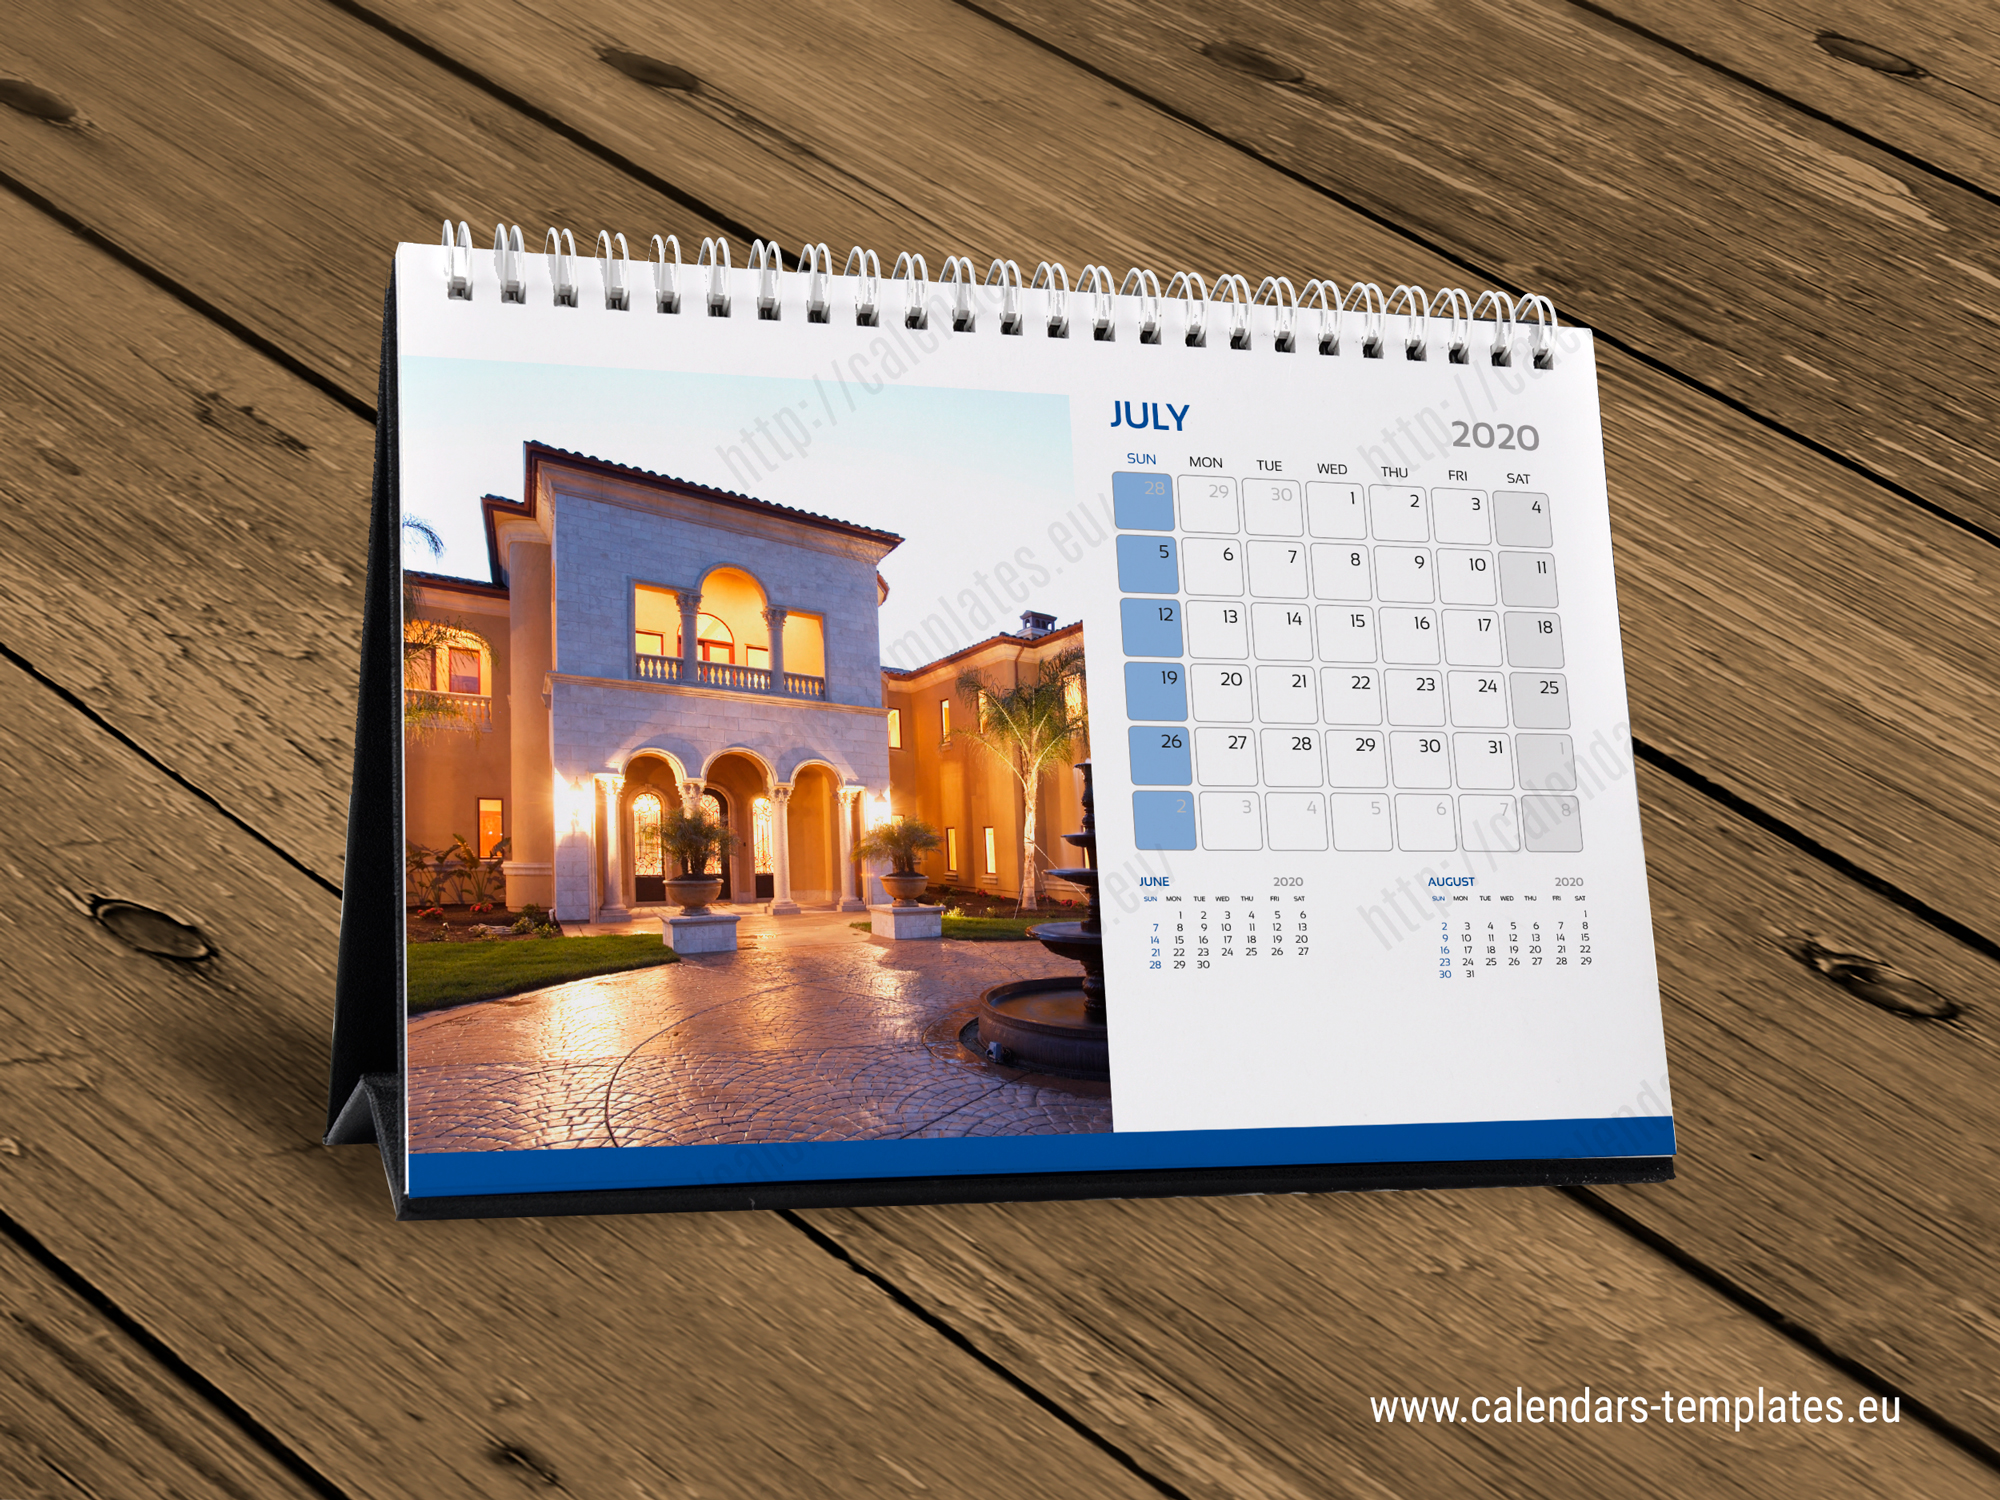 2020 Desk Monthly Calendar KB10-W5